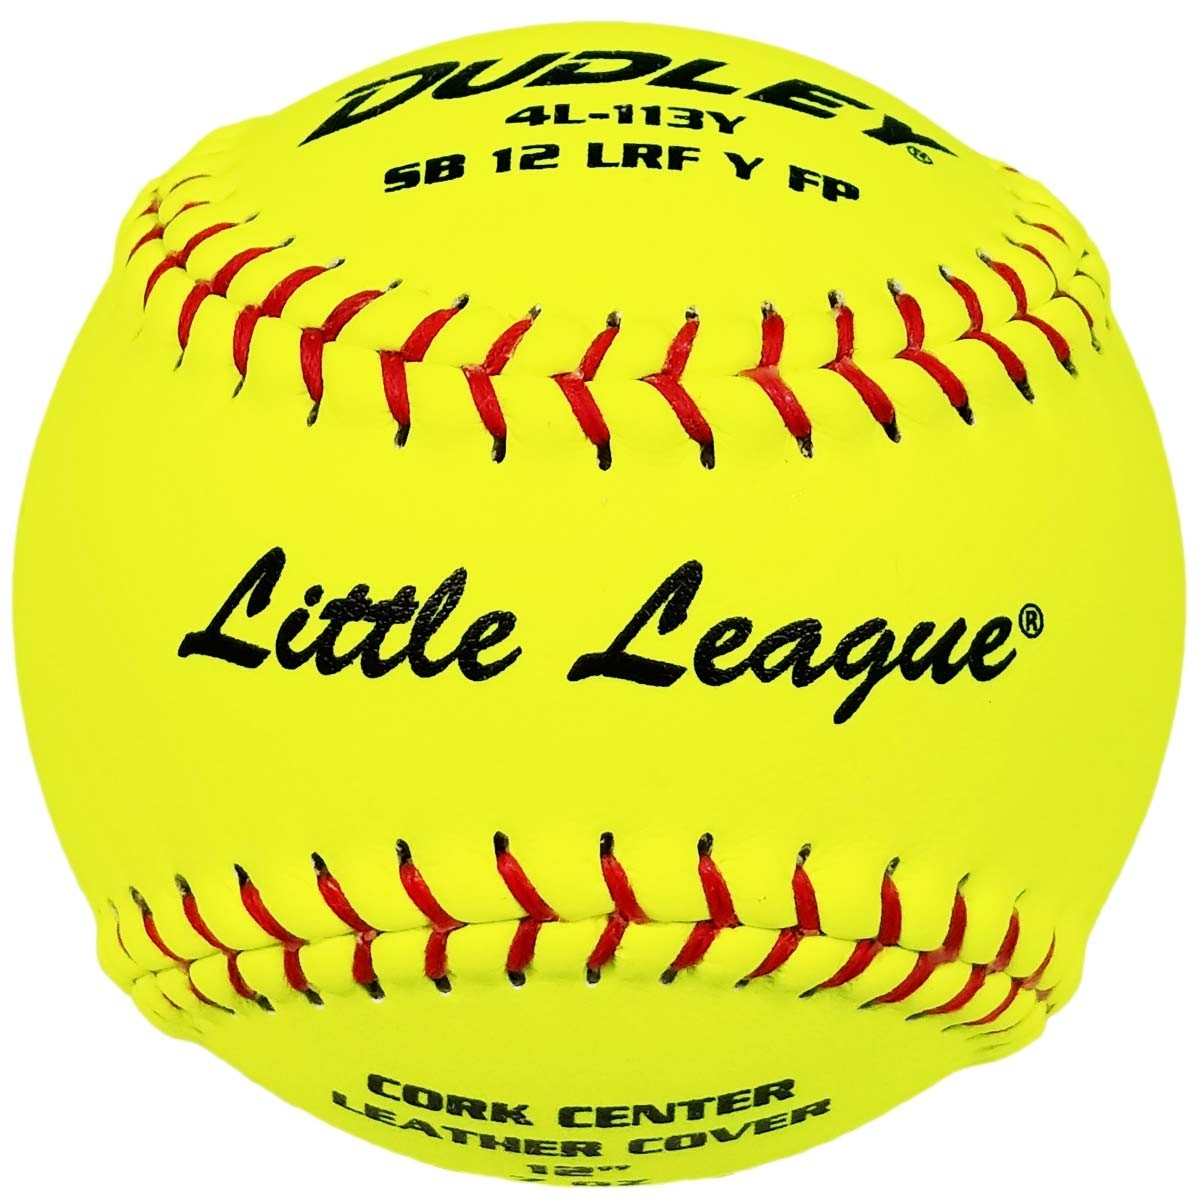 DUDLEY LITTLE LEAGUE .47 375 FASTPITCH SOFTBALLS 12 INCH - 4L113Y